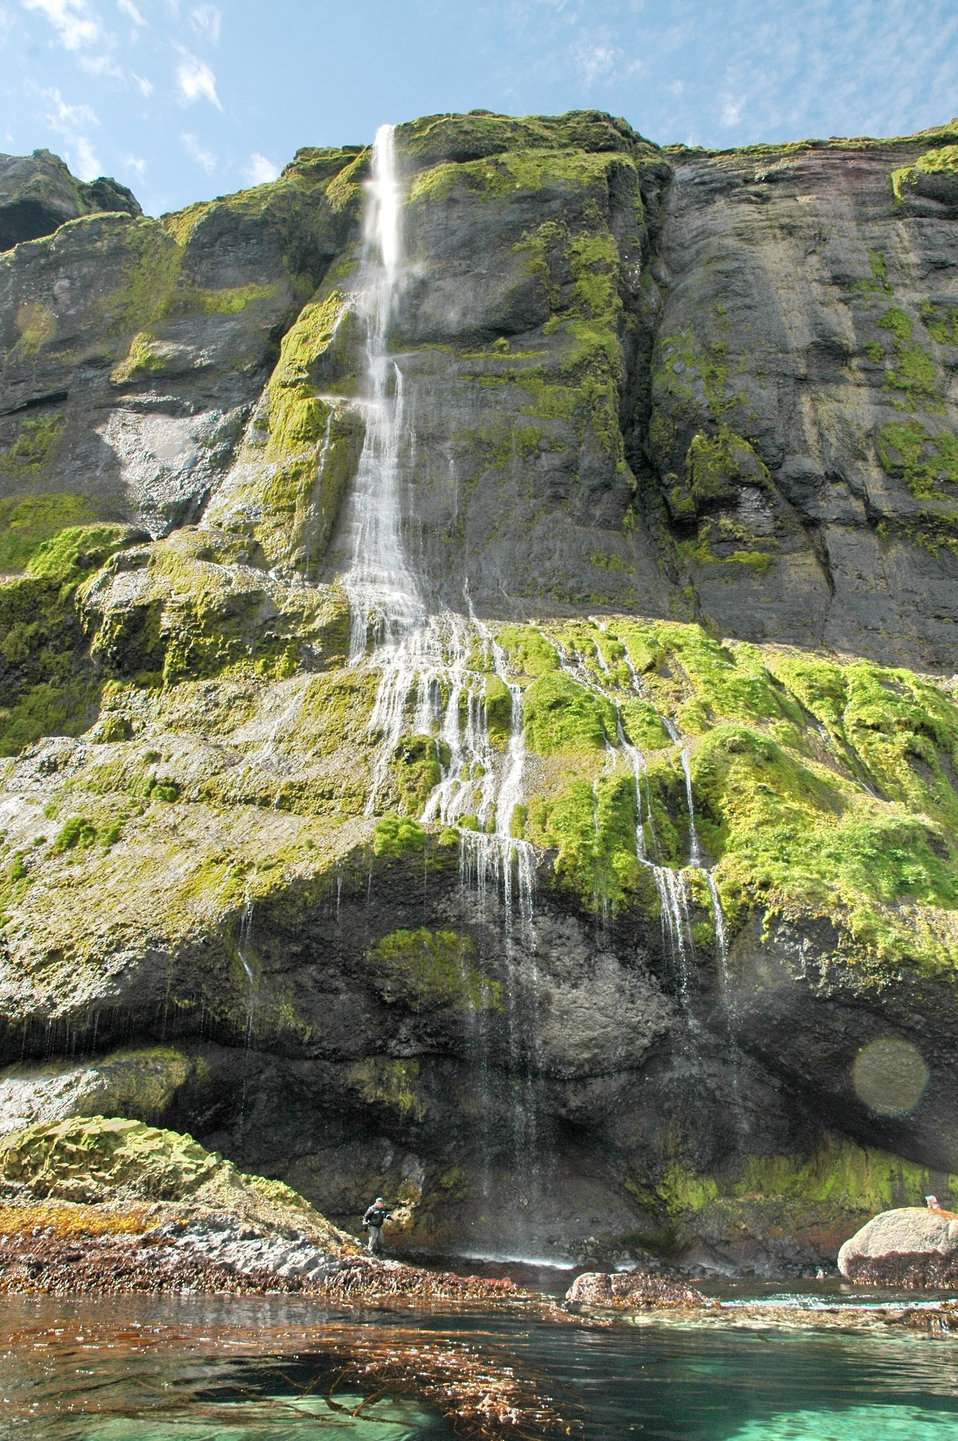 A beautiful waterfall flowing over moss-covered rocks to a kelp forest